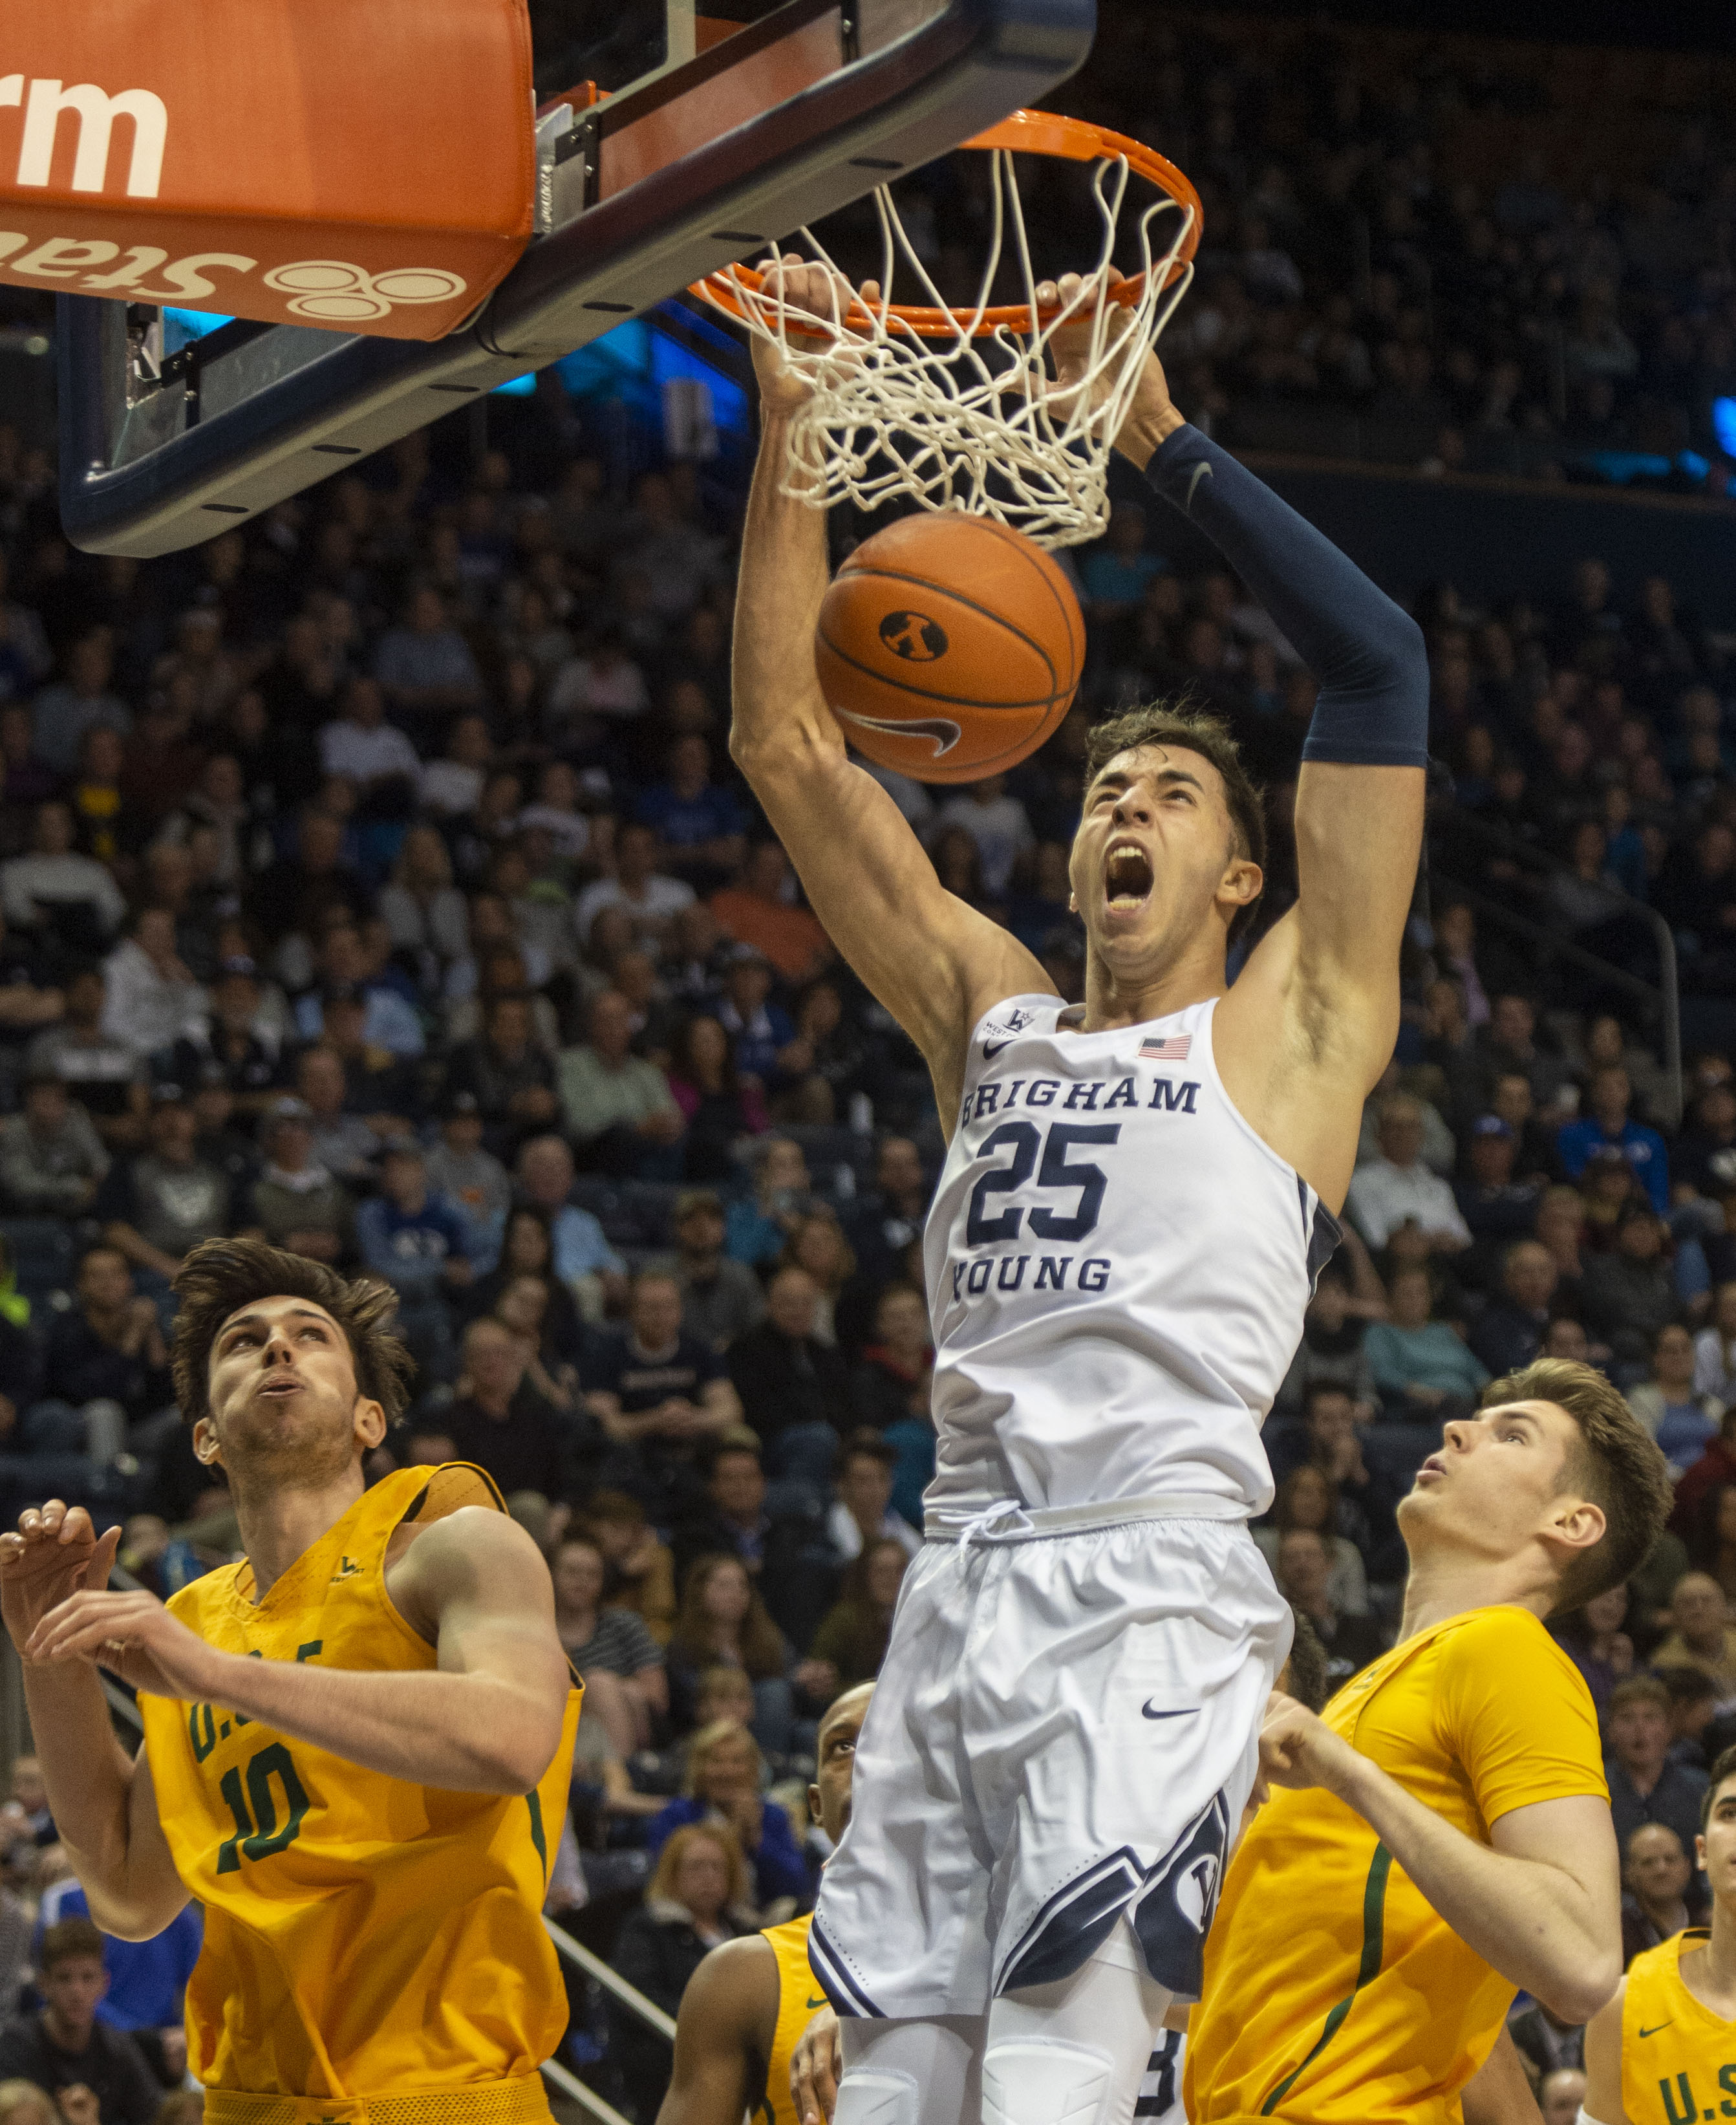 (Rick Egan  |  The Salt Lake Tribune)      Brigham Young forward Gavin Baxter (25) dunks the ball for the Cougars, in WCC basketball action between Brigham Young Cougars and San Francisco Dons, at the Marriott  Center, Thursday, February 21, 2018.